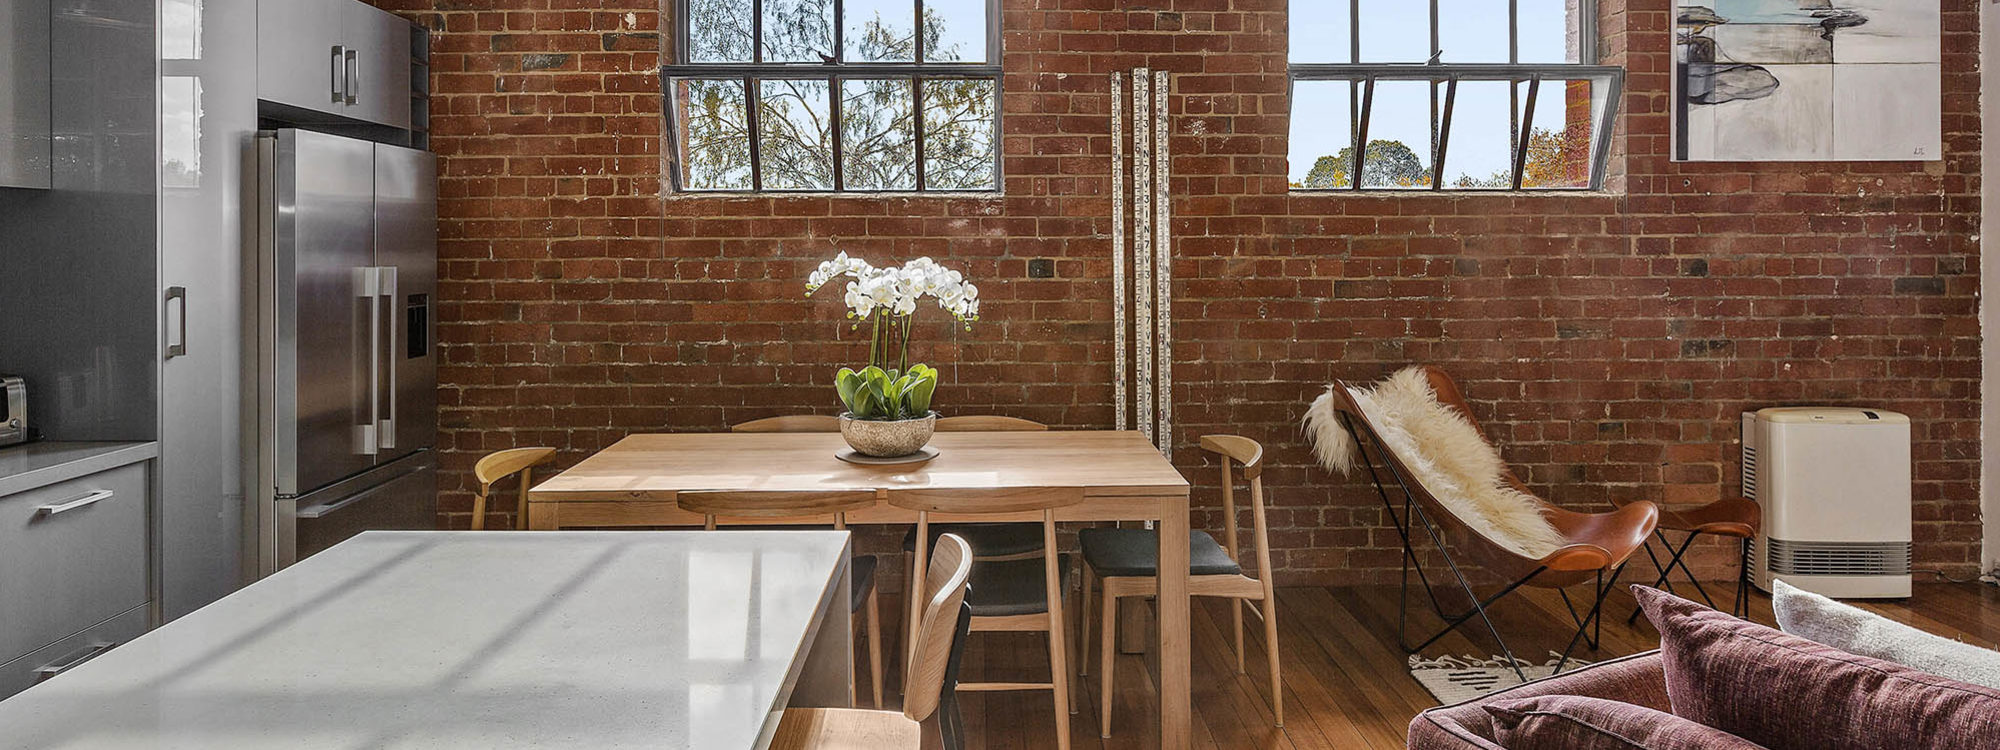 Loft on Rose - Fitzroy - Kitchen and Dining b